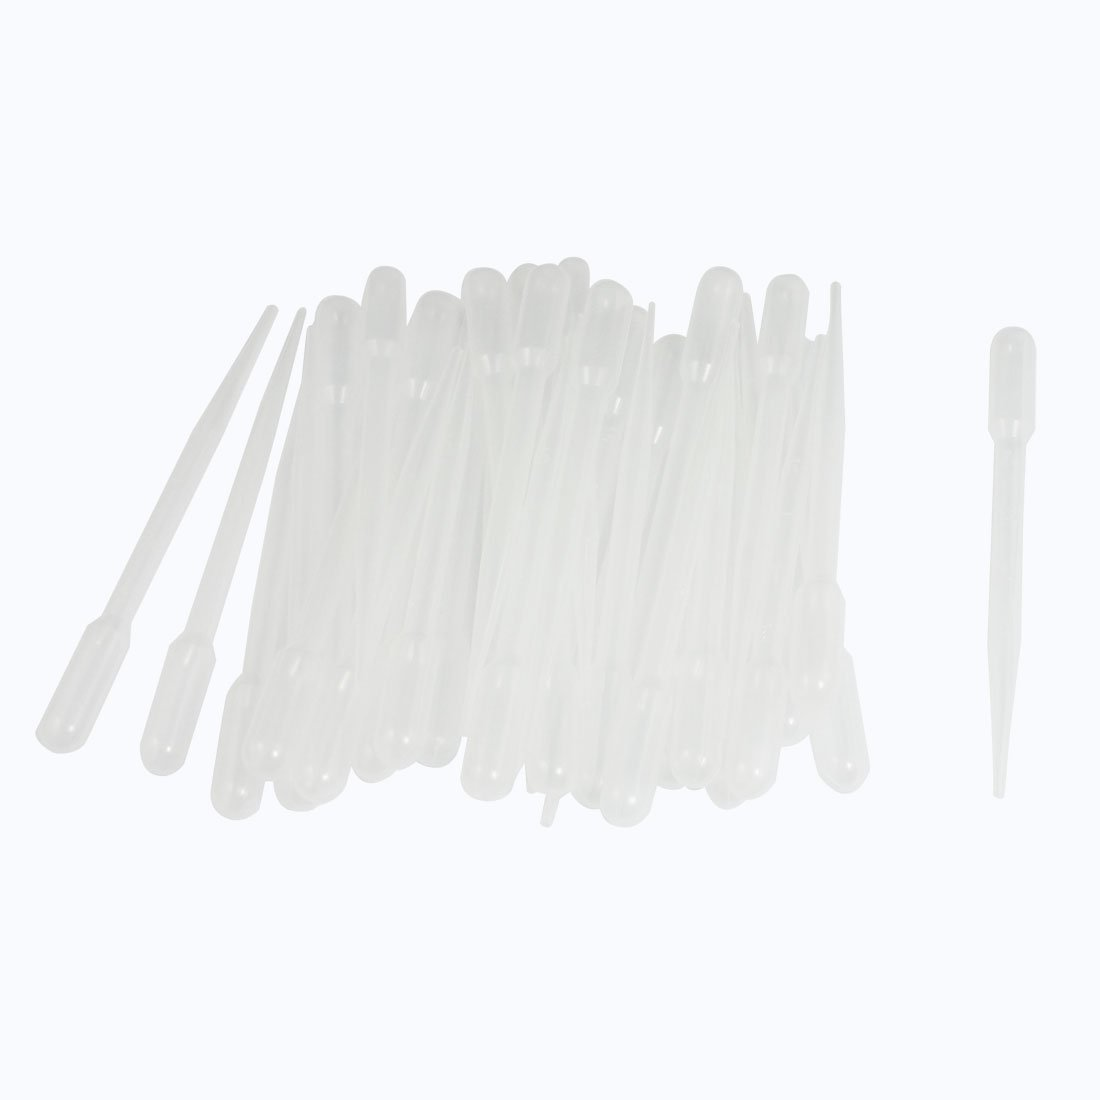 Bluelans® 100 Pcs Clear White Plastic Liquid Dropper Pasteur Pipettes Graduated 0.2ml